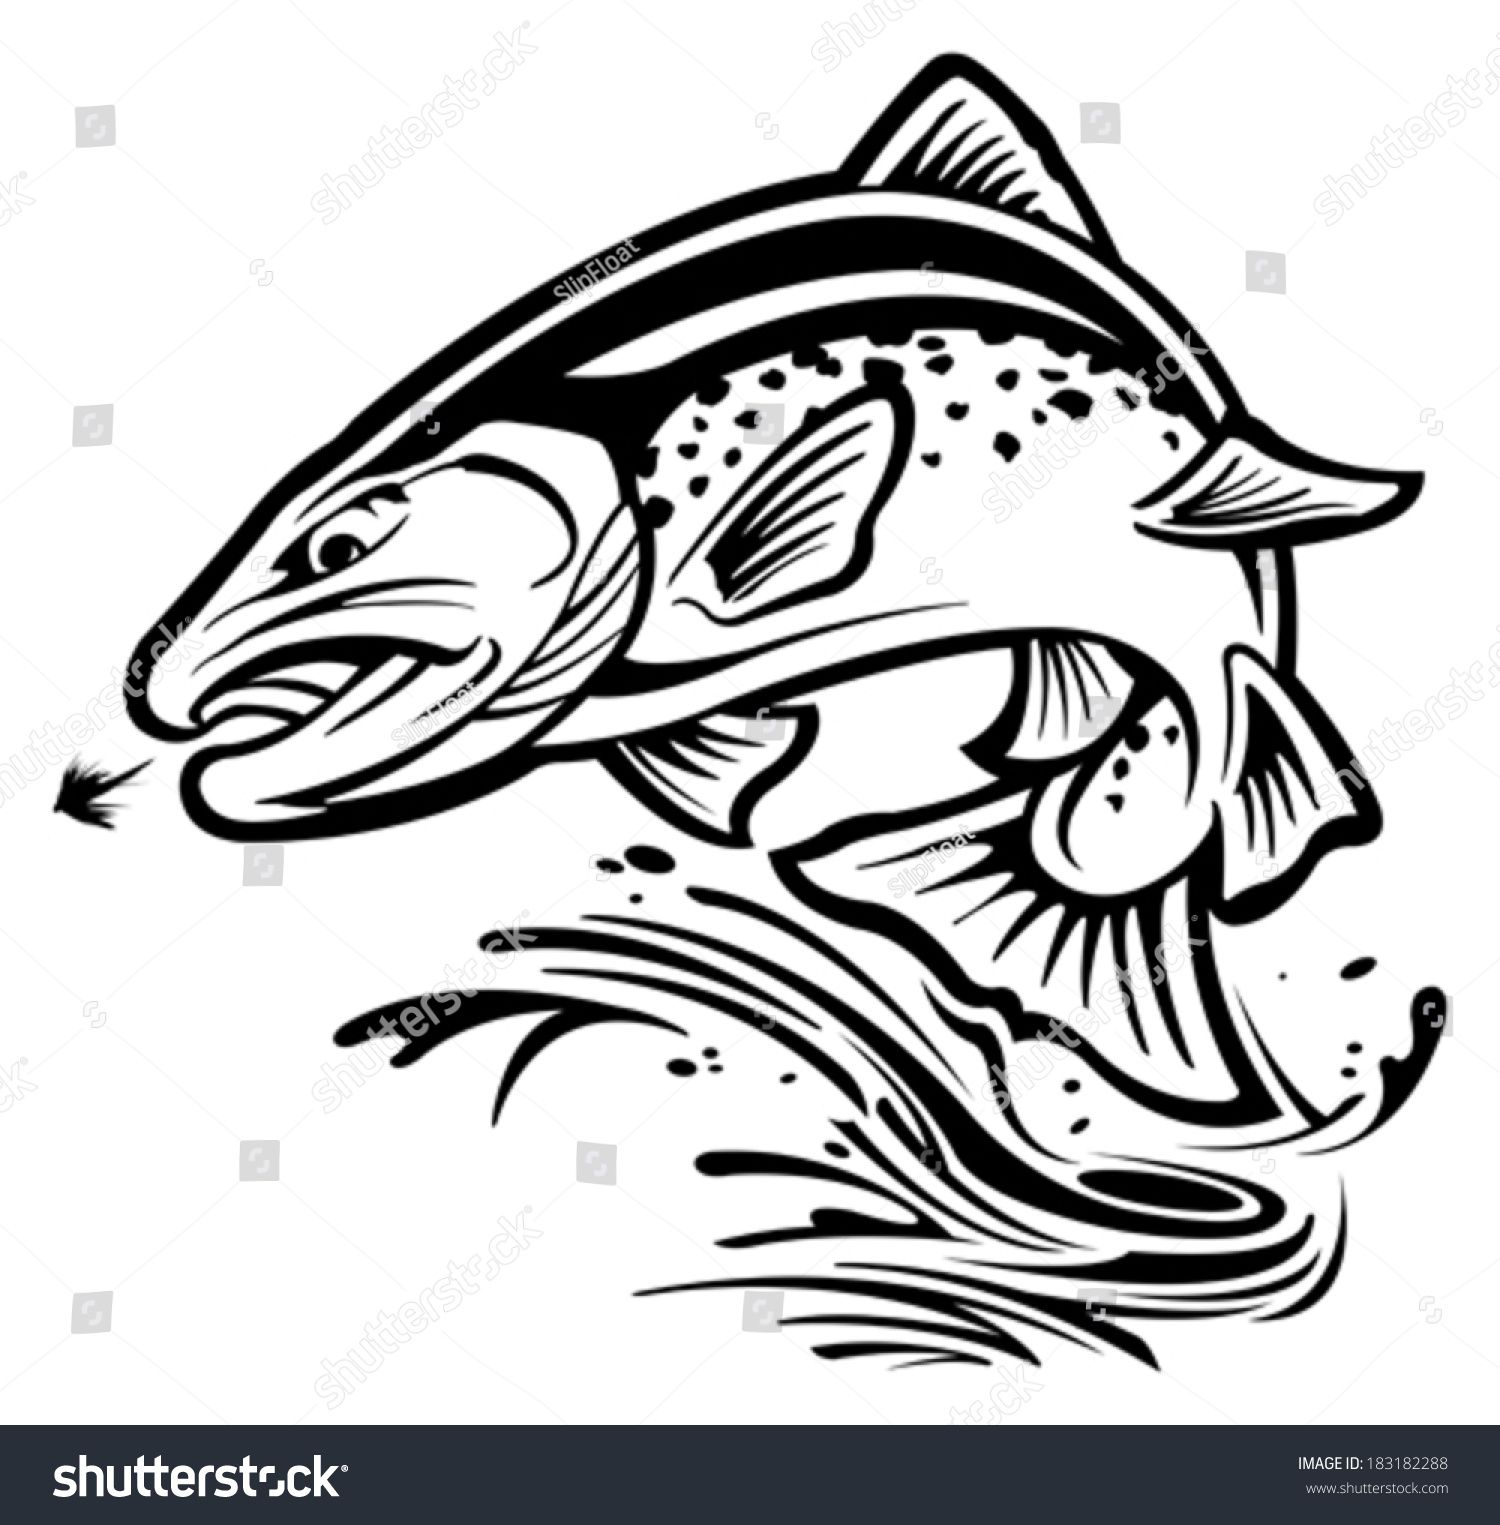 1500x1525 Trout Line Drawing Trout Stock Vector 183182288 Shutterstock